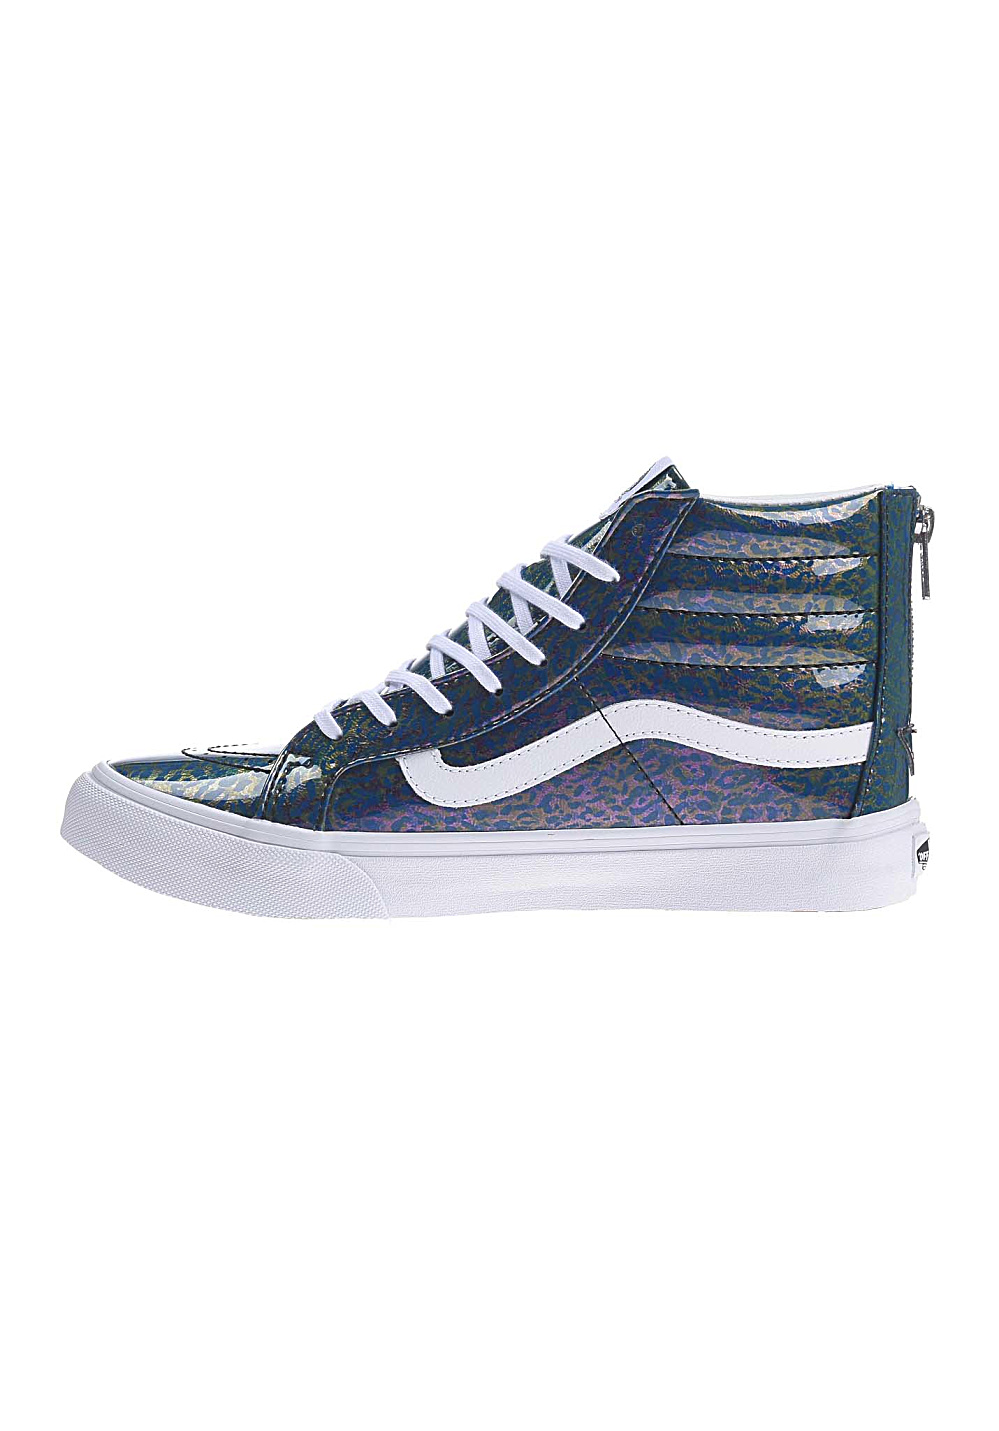 c11208f44d6fb3 Vans SK8-Hi Slim Zip - Sneakers for Women - Blue - Planet Sports